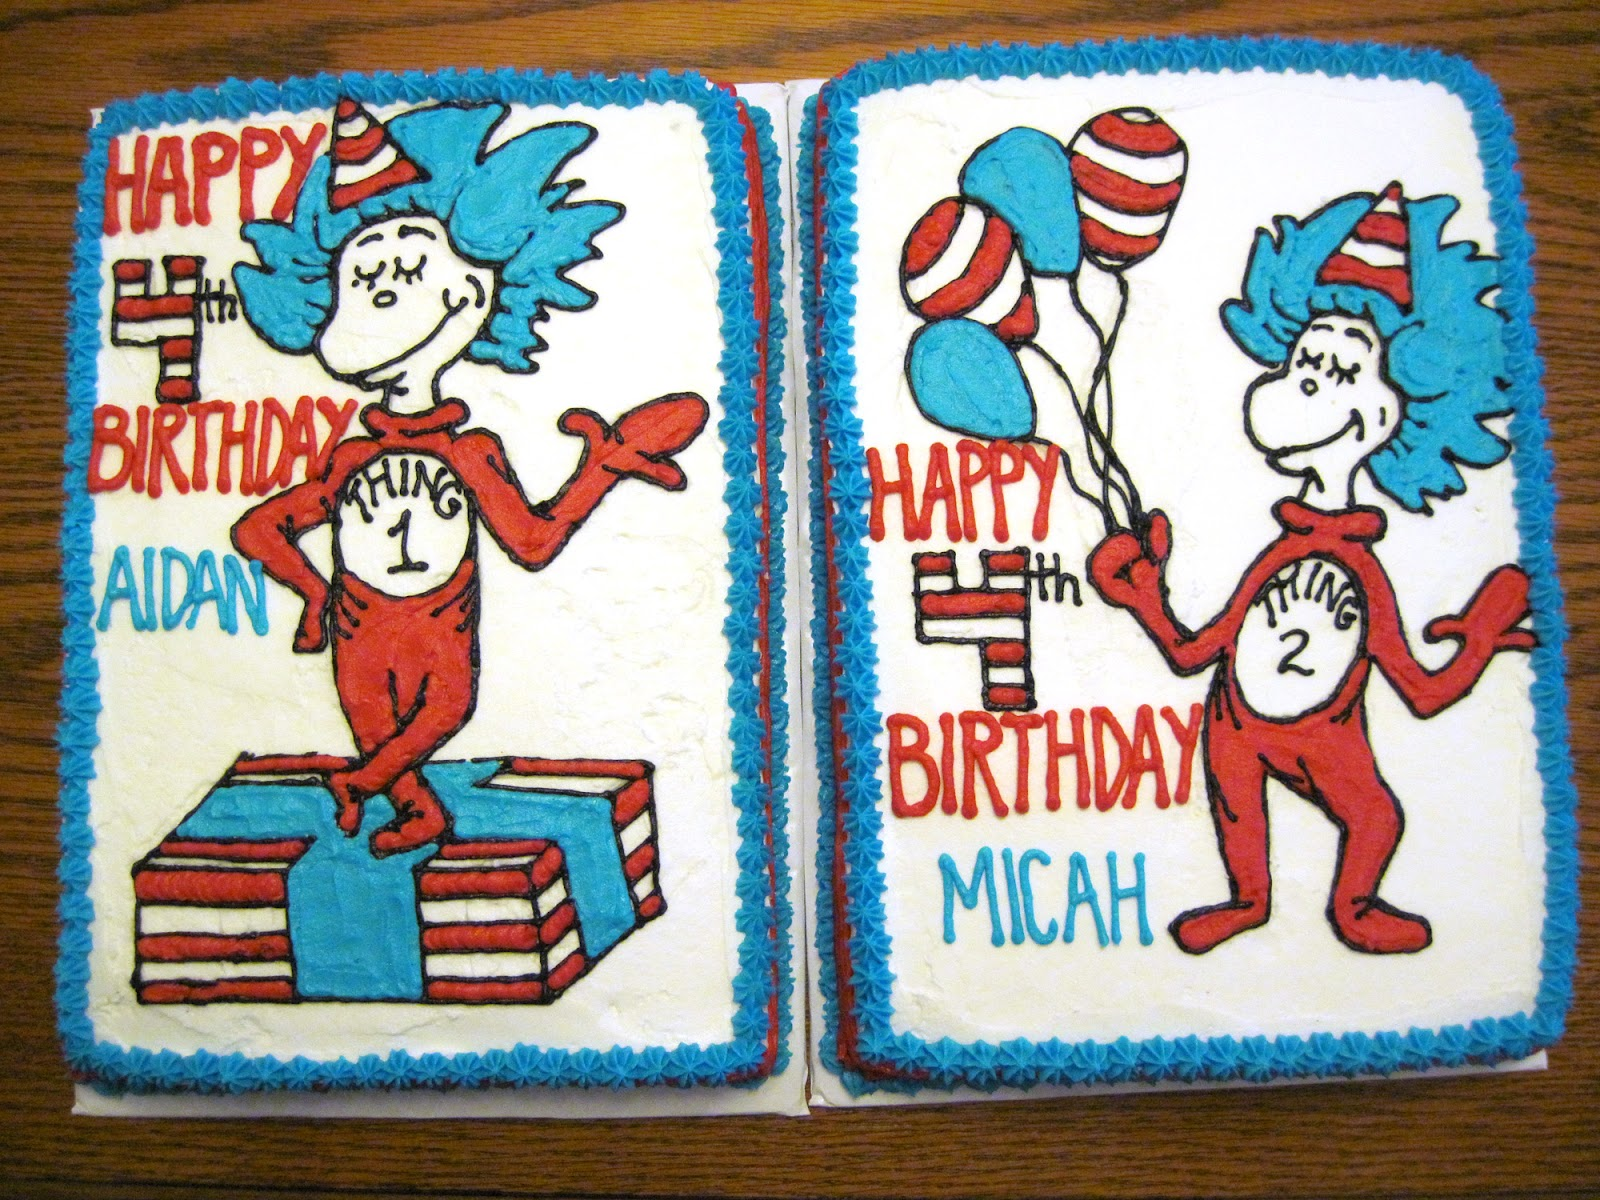 Erins Custom Cakes Thing 1 And Thing 2 Say Happy Birthday To You